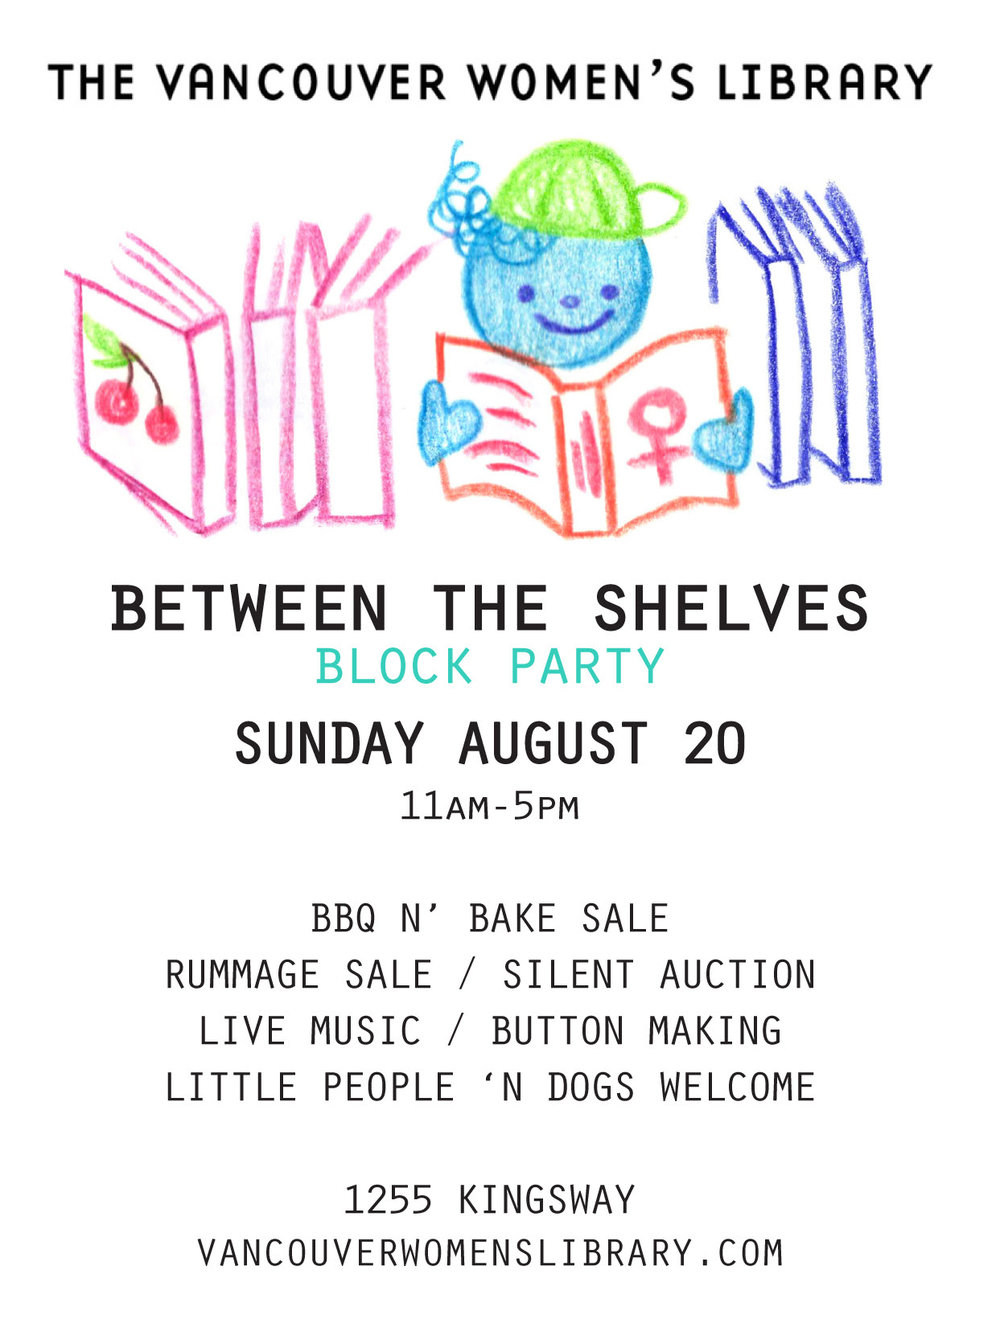 Block Party - One of our many talented volunteers JJ designed some adorable flyers for the Block Party!! Keep an eye out to bid on Jenny's adorable stick & poke tattoo donation up for silent auction!